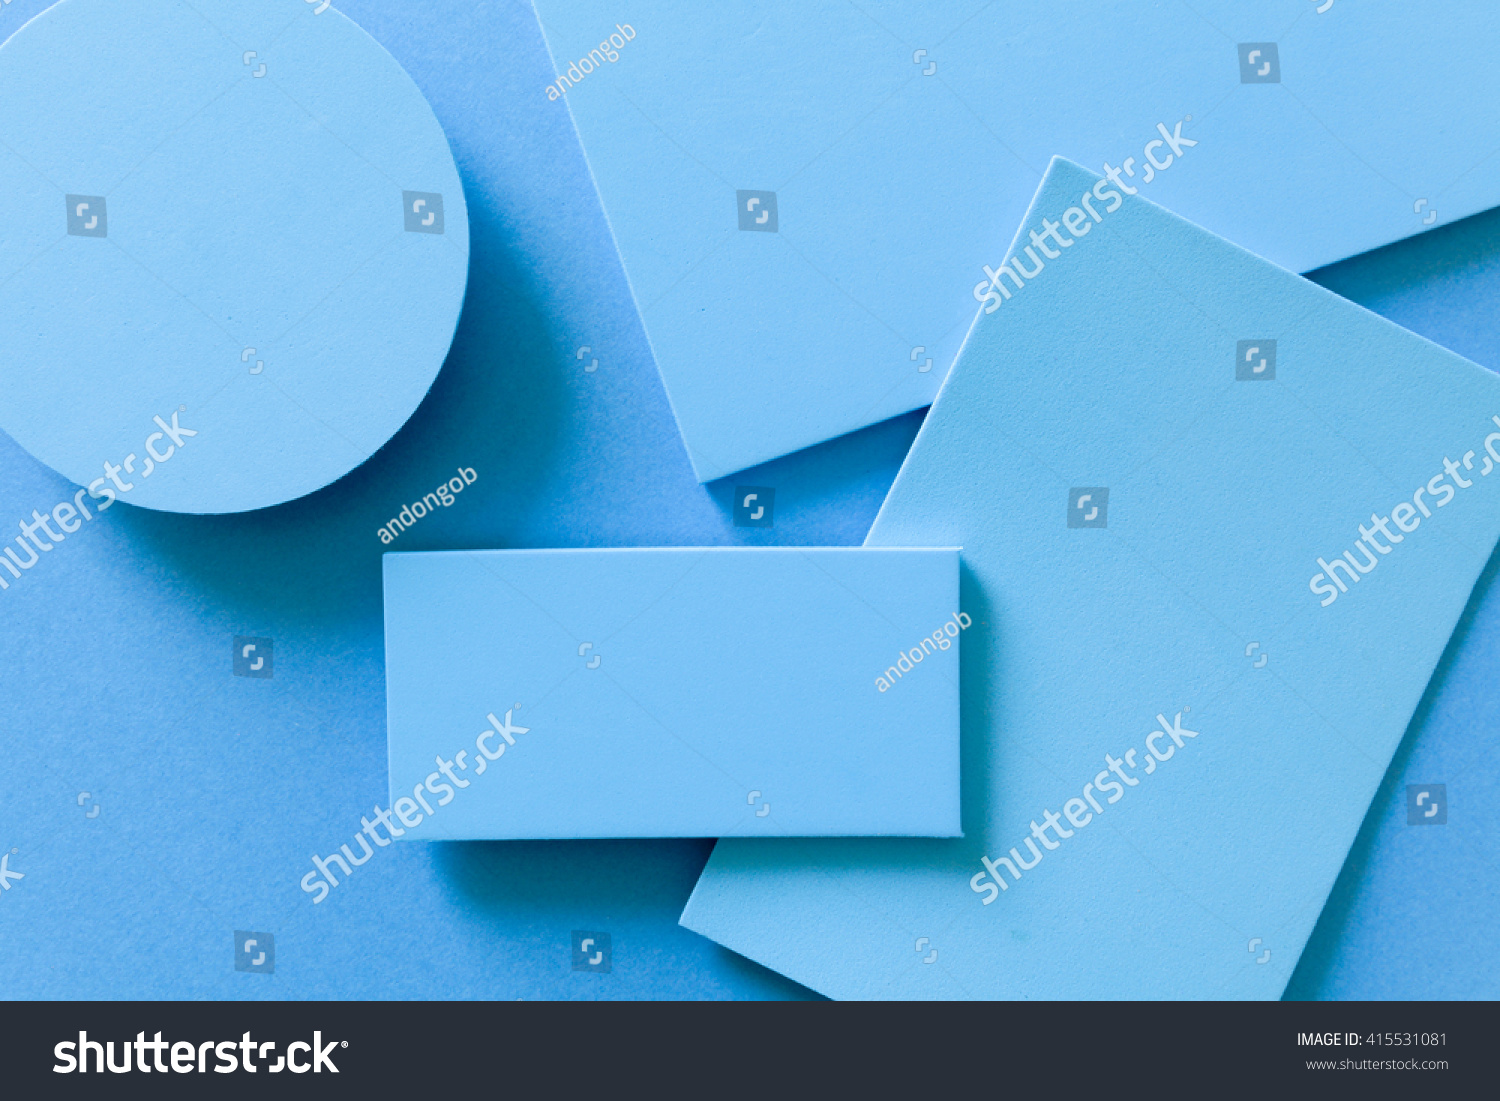 Monochromatic blue background with geometric shapes shaded imitating the  material design